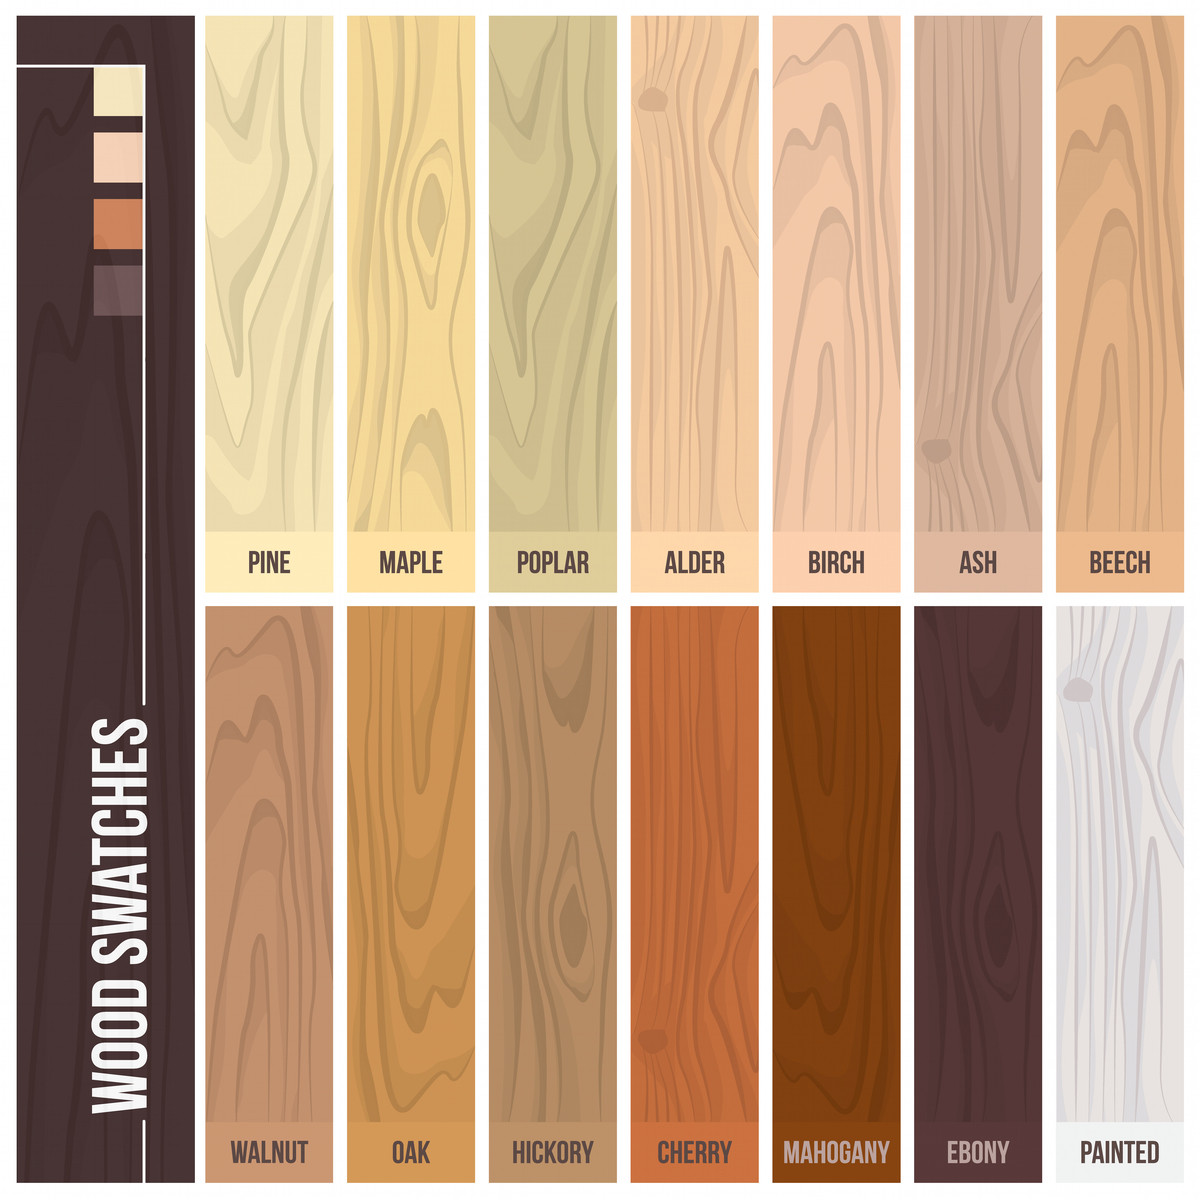 rustic red oak hardwood flooring of 12 types of hardwood flooring species styles edging dimensions for types of hardwood flooring illustrated guide